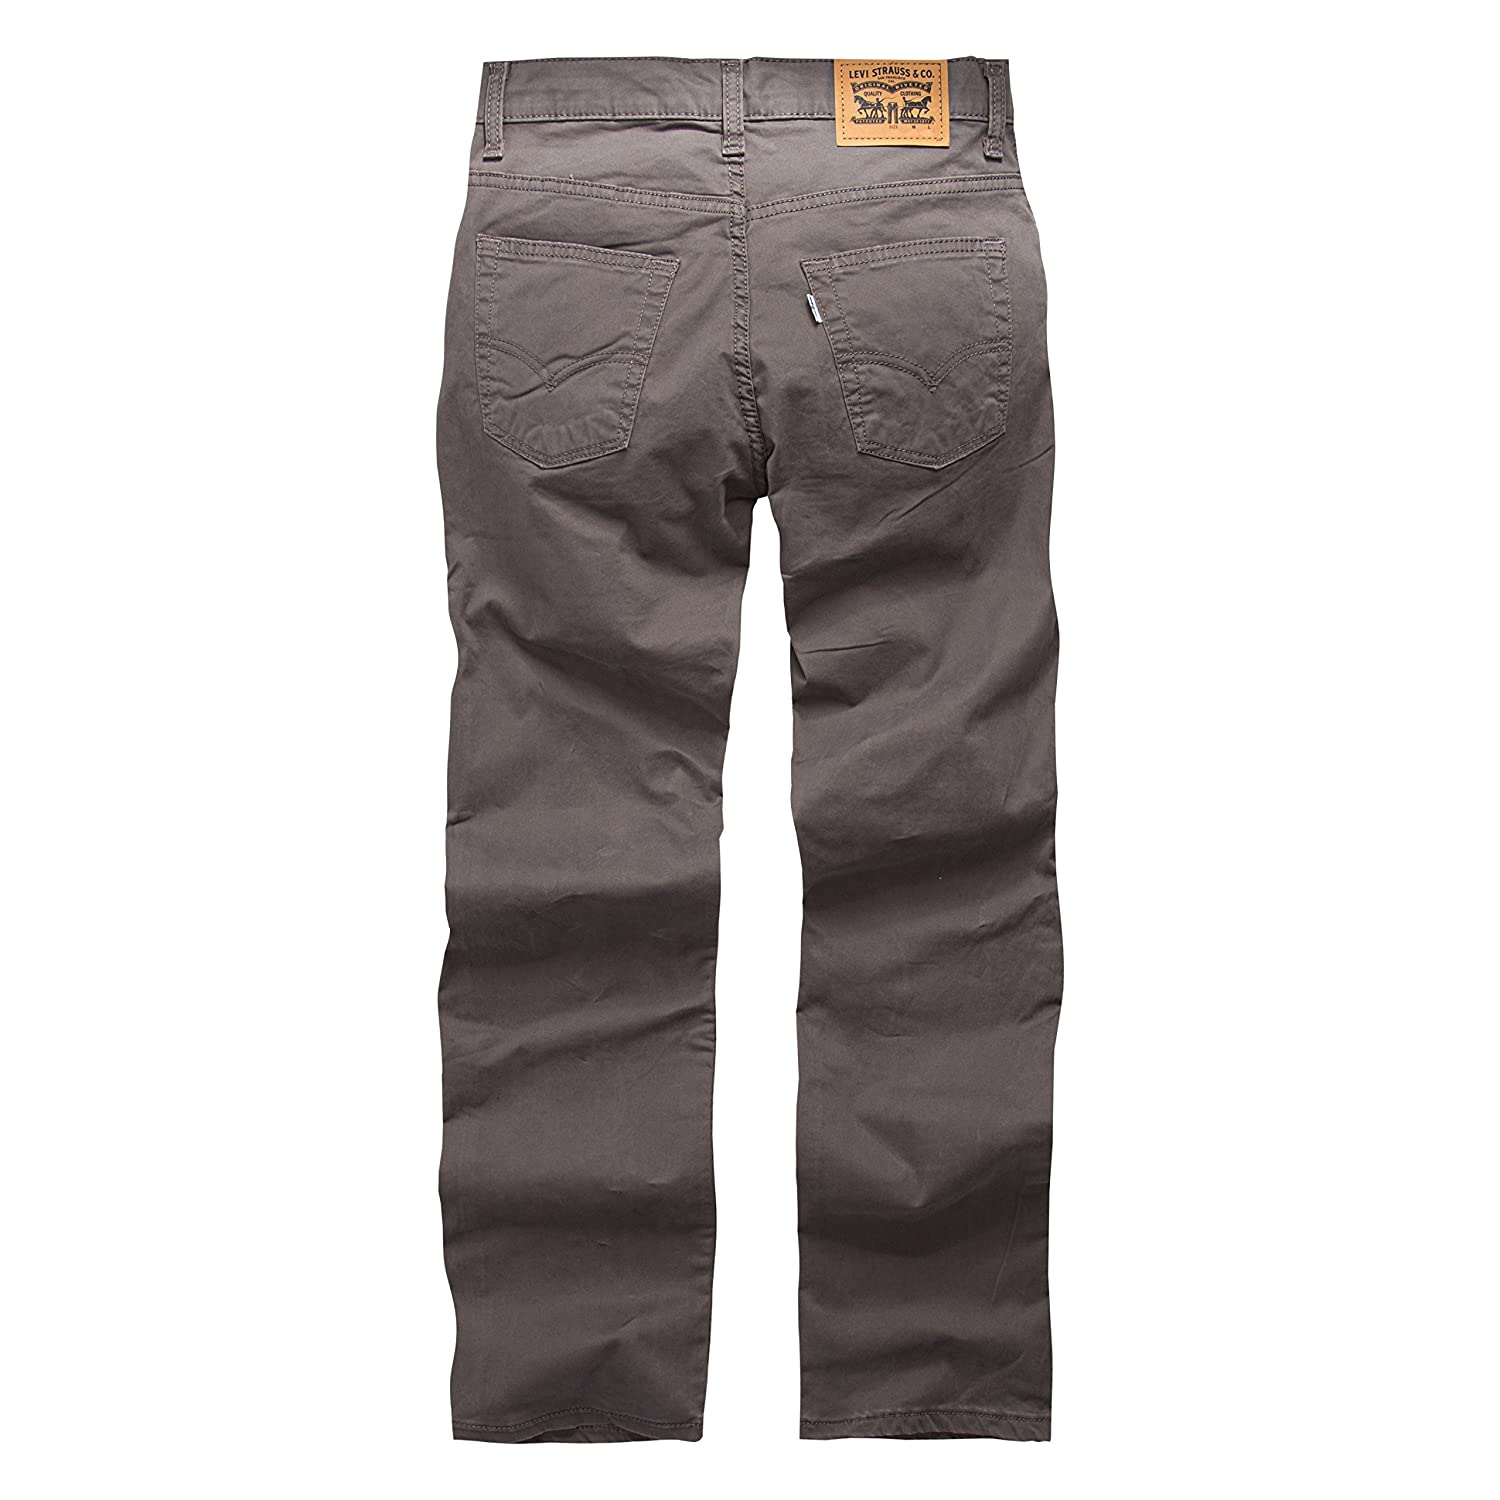 87cdca5c Amazon.com: Levi's Boys' 511 Slim Fit Soft Brushed Pants: Clothing